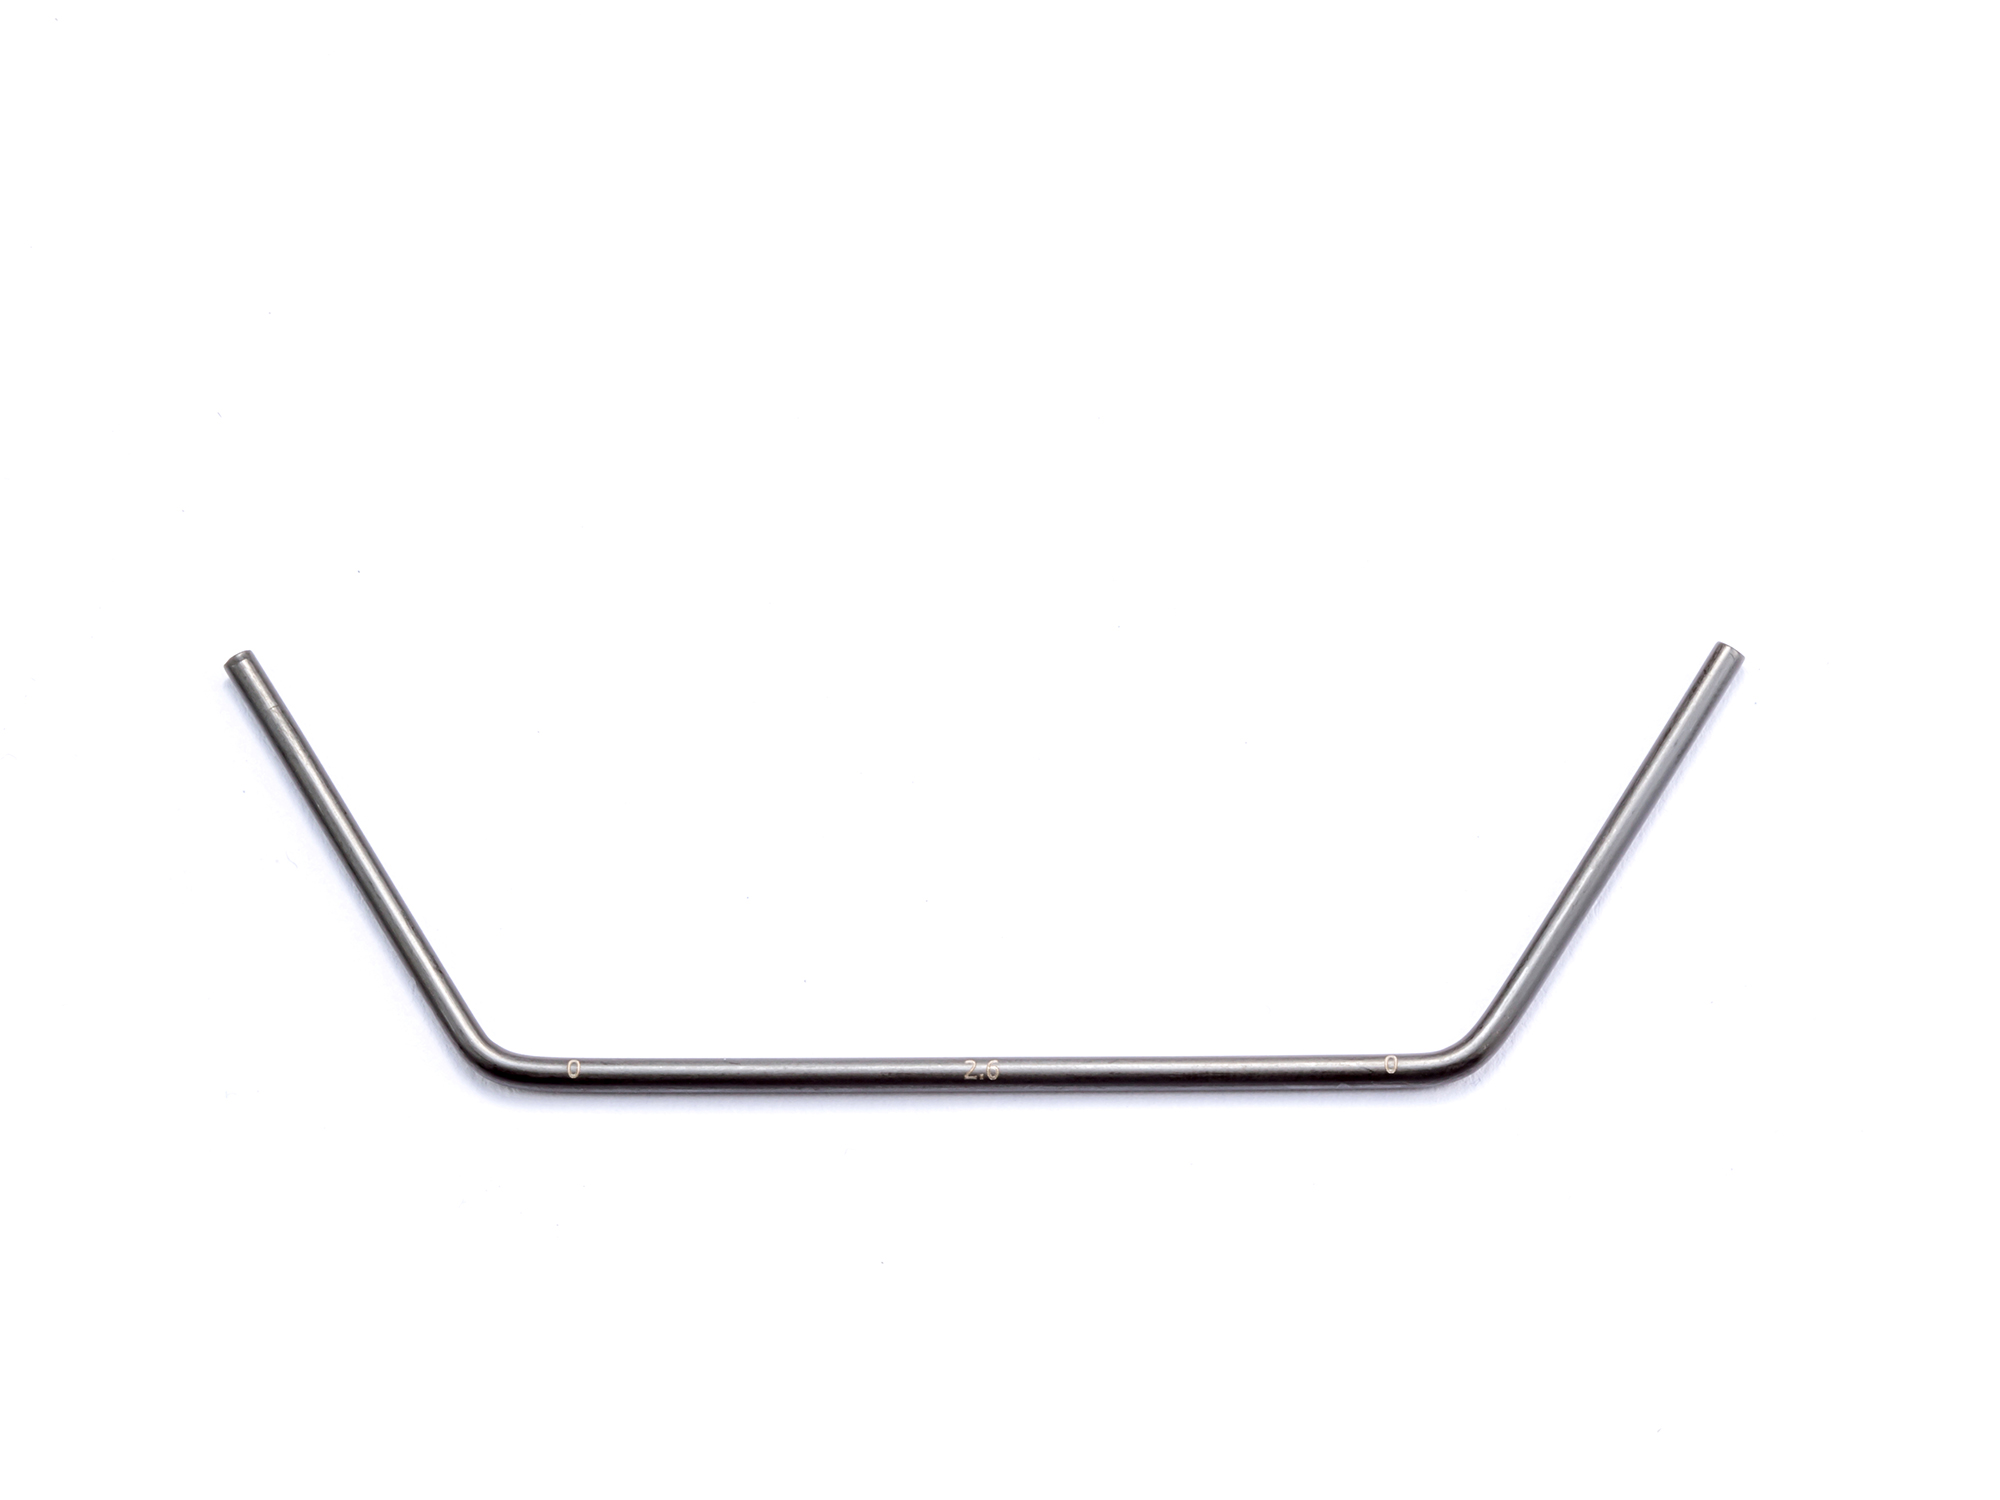 [R0304-2.6] FRONT ANTI-ROLL BAR 2.6mm(IF18-2)